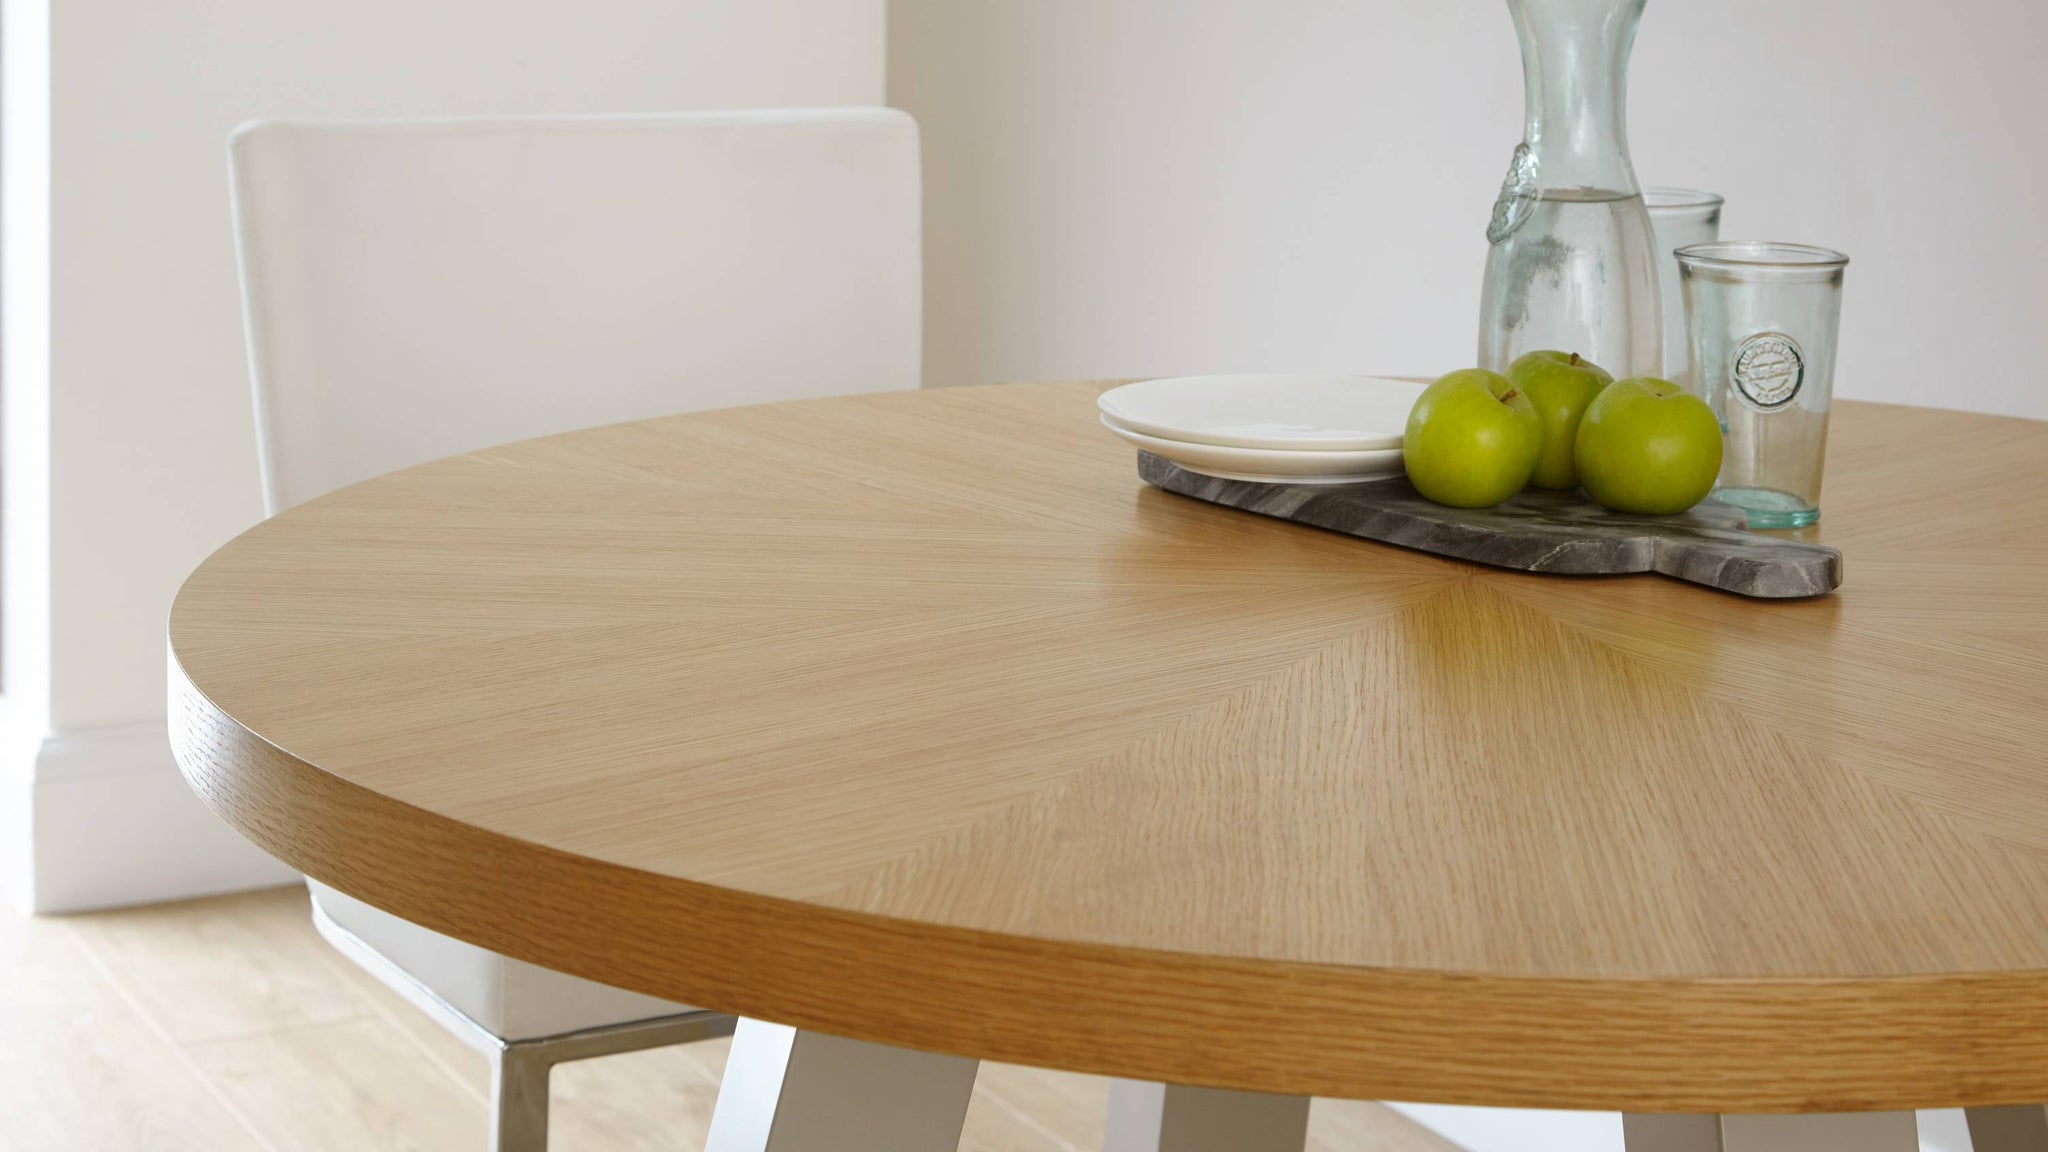 Wood veneer round four seater dining table Exclusively Danetti with Julia Kendell Range